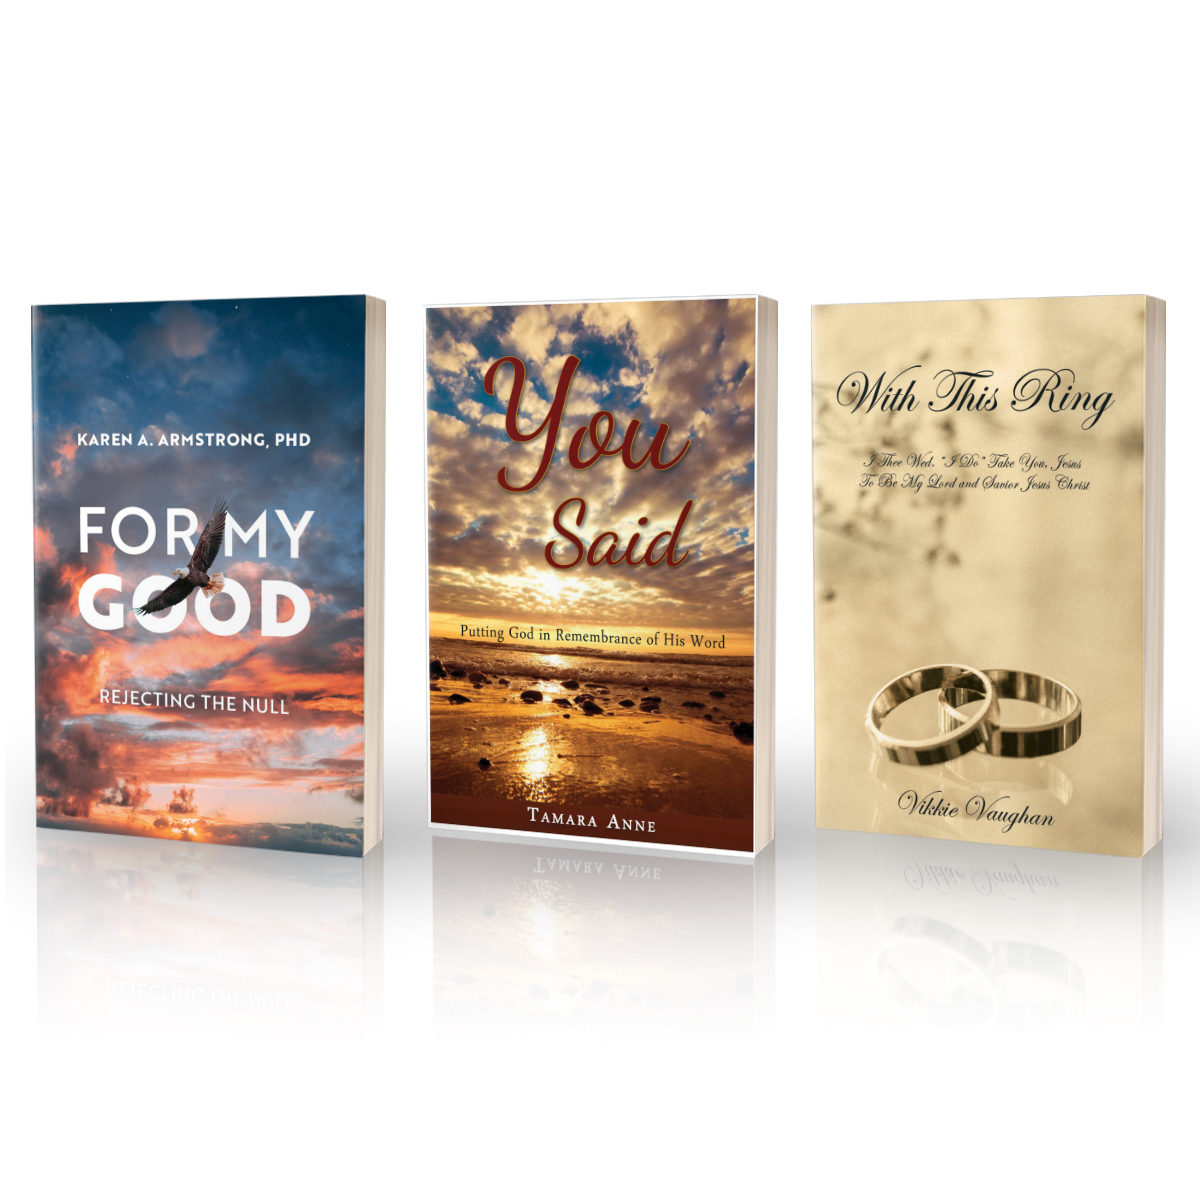 NEW BOOKS THIS WEEK!!  Karen A. Armstrong: https://t.co/mbj5Y2Z4nY   Vikkie Vaughn: https://t.co/HQhy9qBLKA   Tamara Goines: https://t.co/GtzrF3wXGc  ---Have you ever dreamed of being an author? @TBN & @trilogybooks want to help! Follow us and go to https://t.co/pEITdM14ji now https://t.co/LRIJMNoUQu